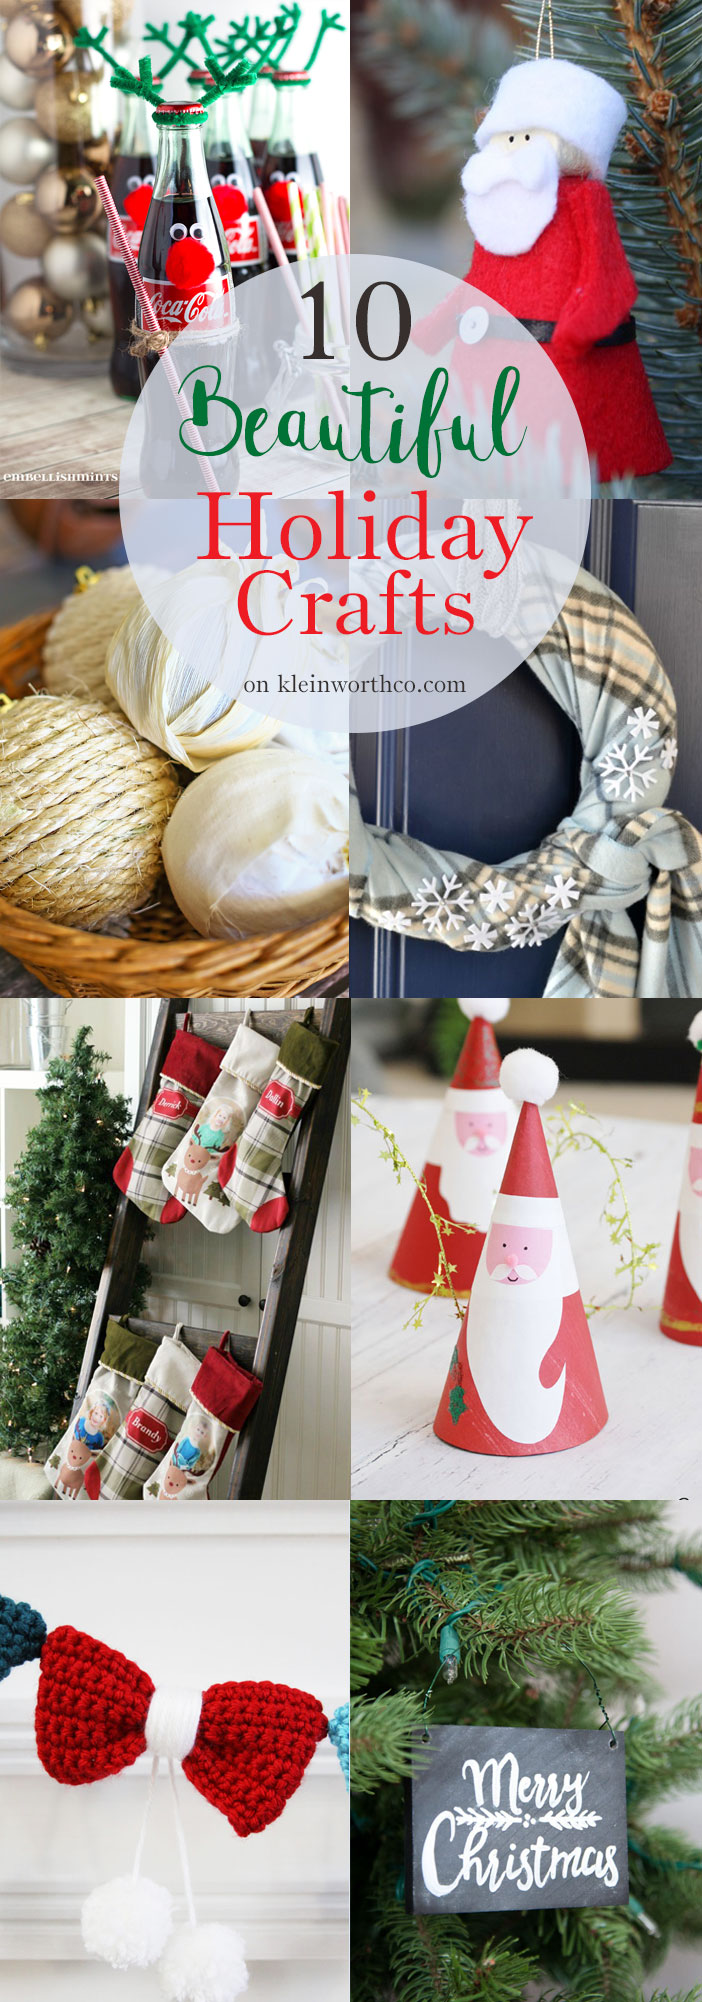 10 Beautiful Holiday Crafts